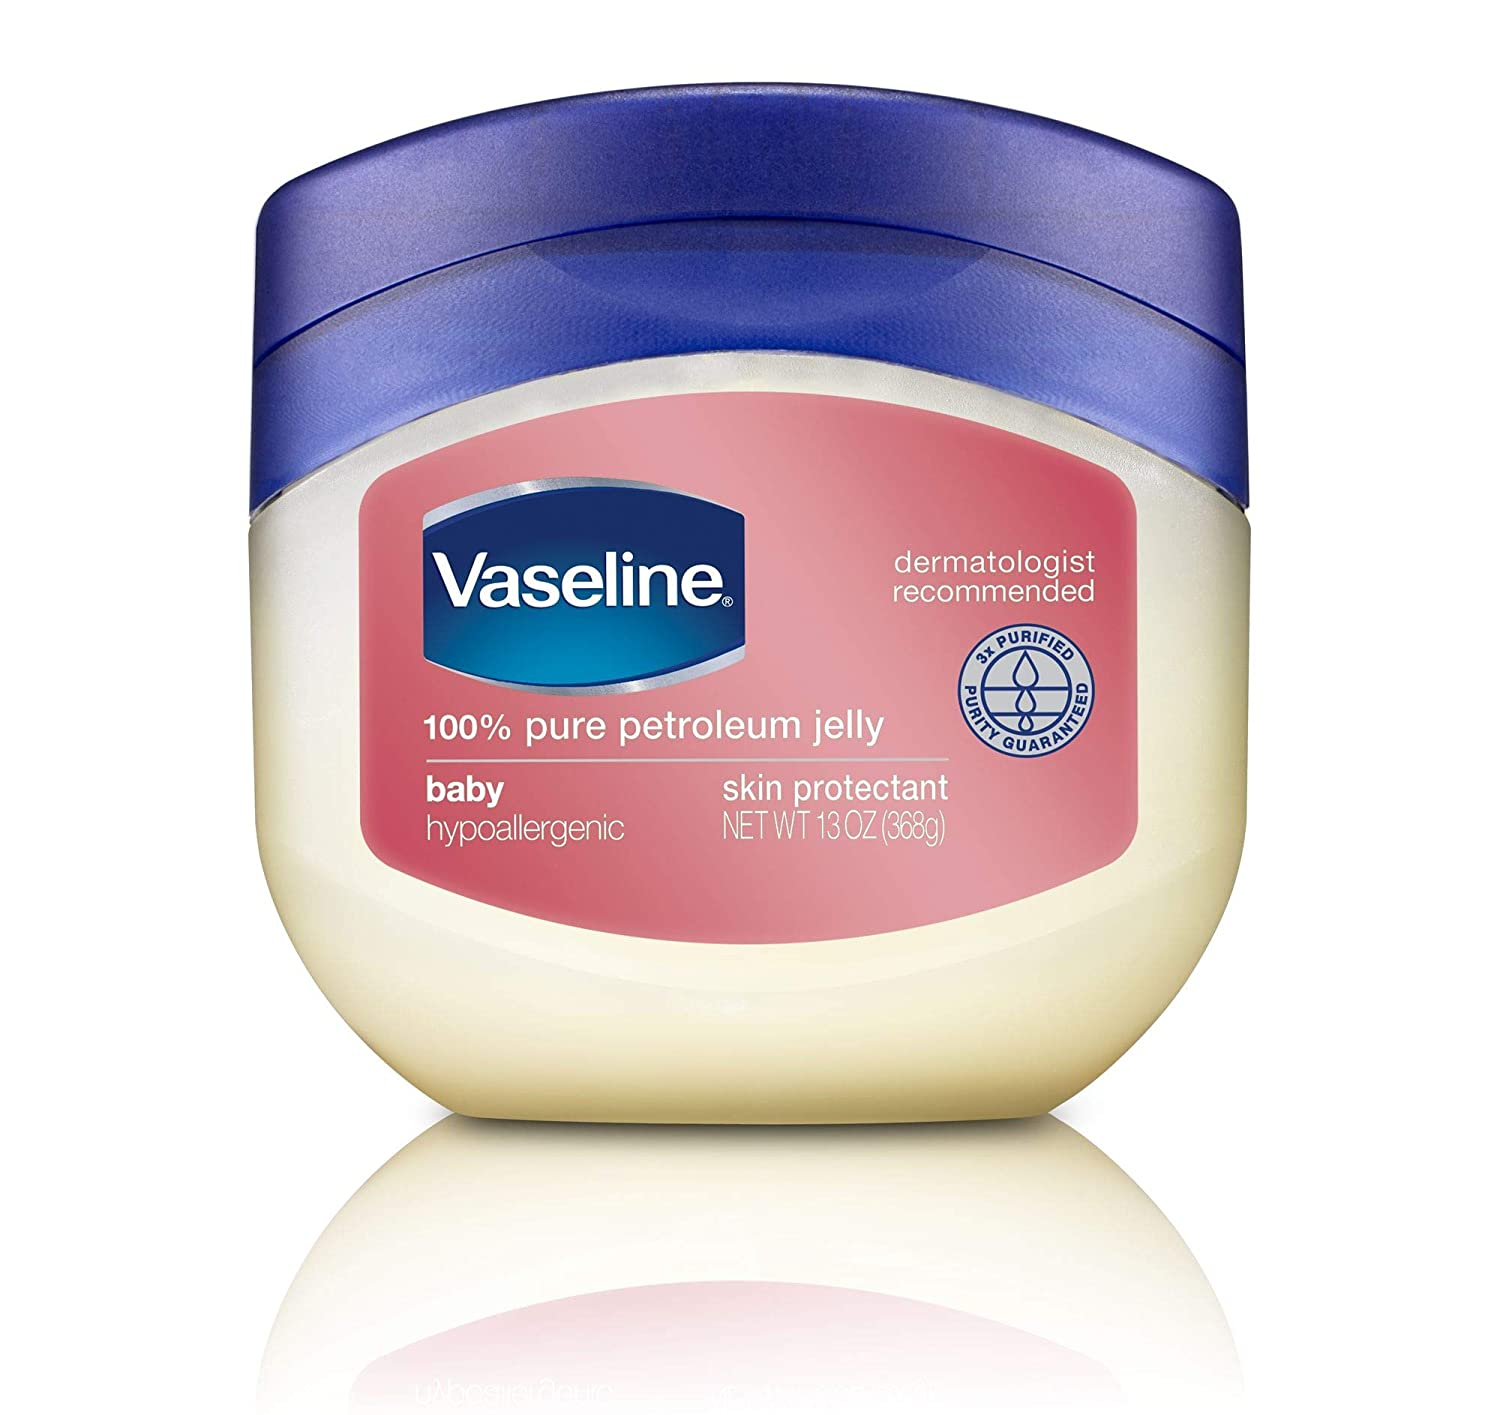 Vaseline Petroleum Jelly, Baby, 13 Oz, Pack of 4